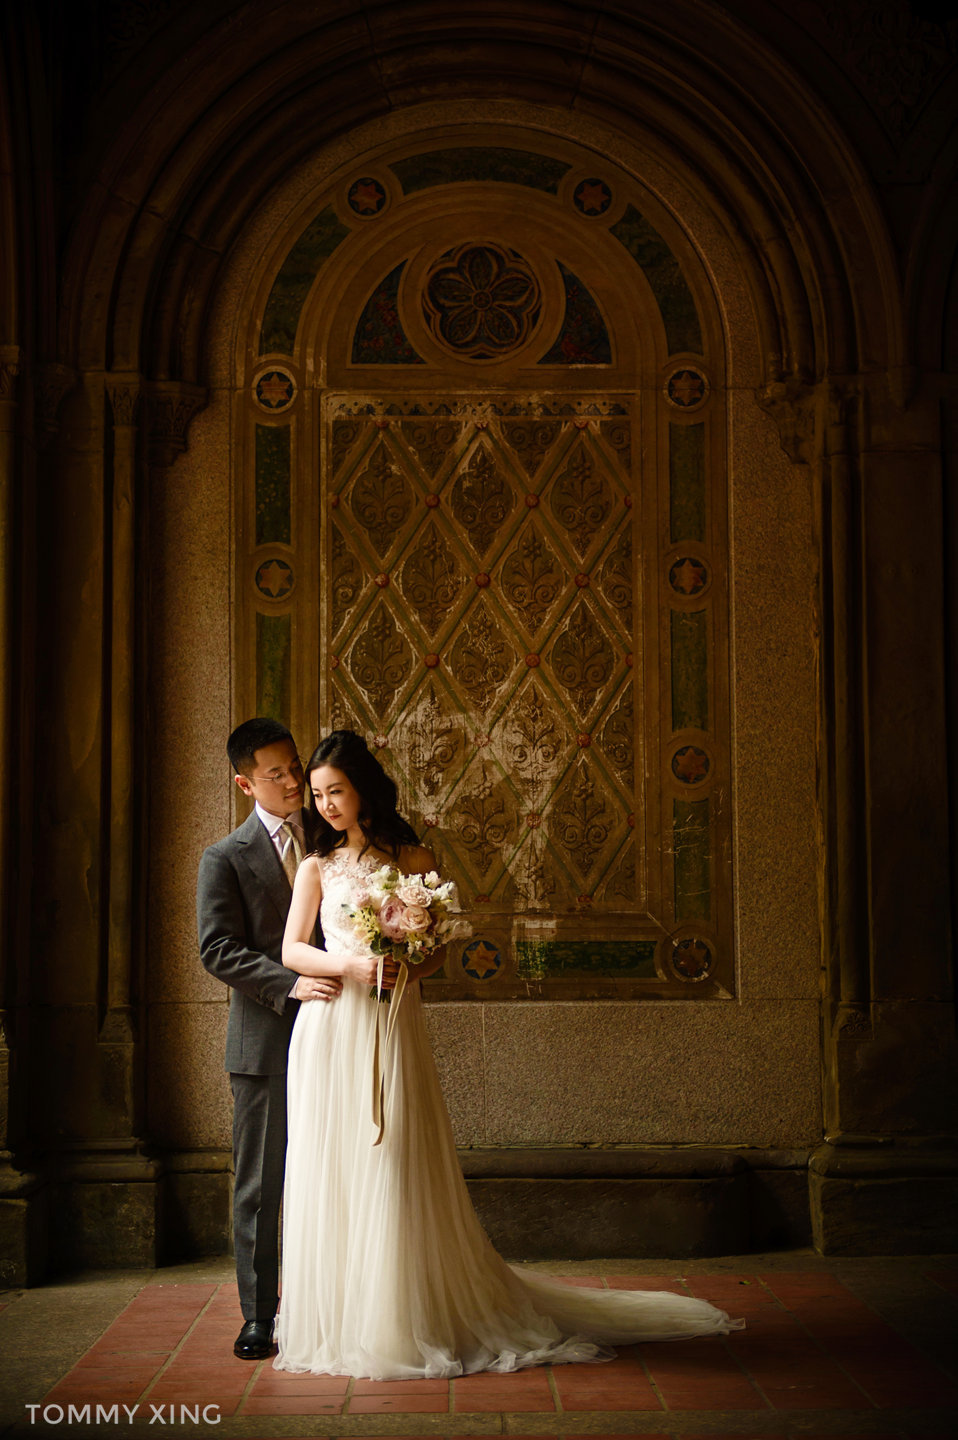 New York Pre Wedding Song & Ziyao by Tommy Xing Photography 纽约婚纱照摄影 13.jpg